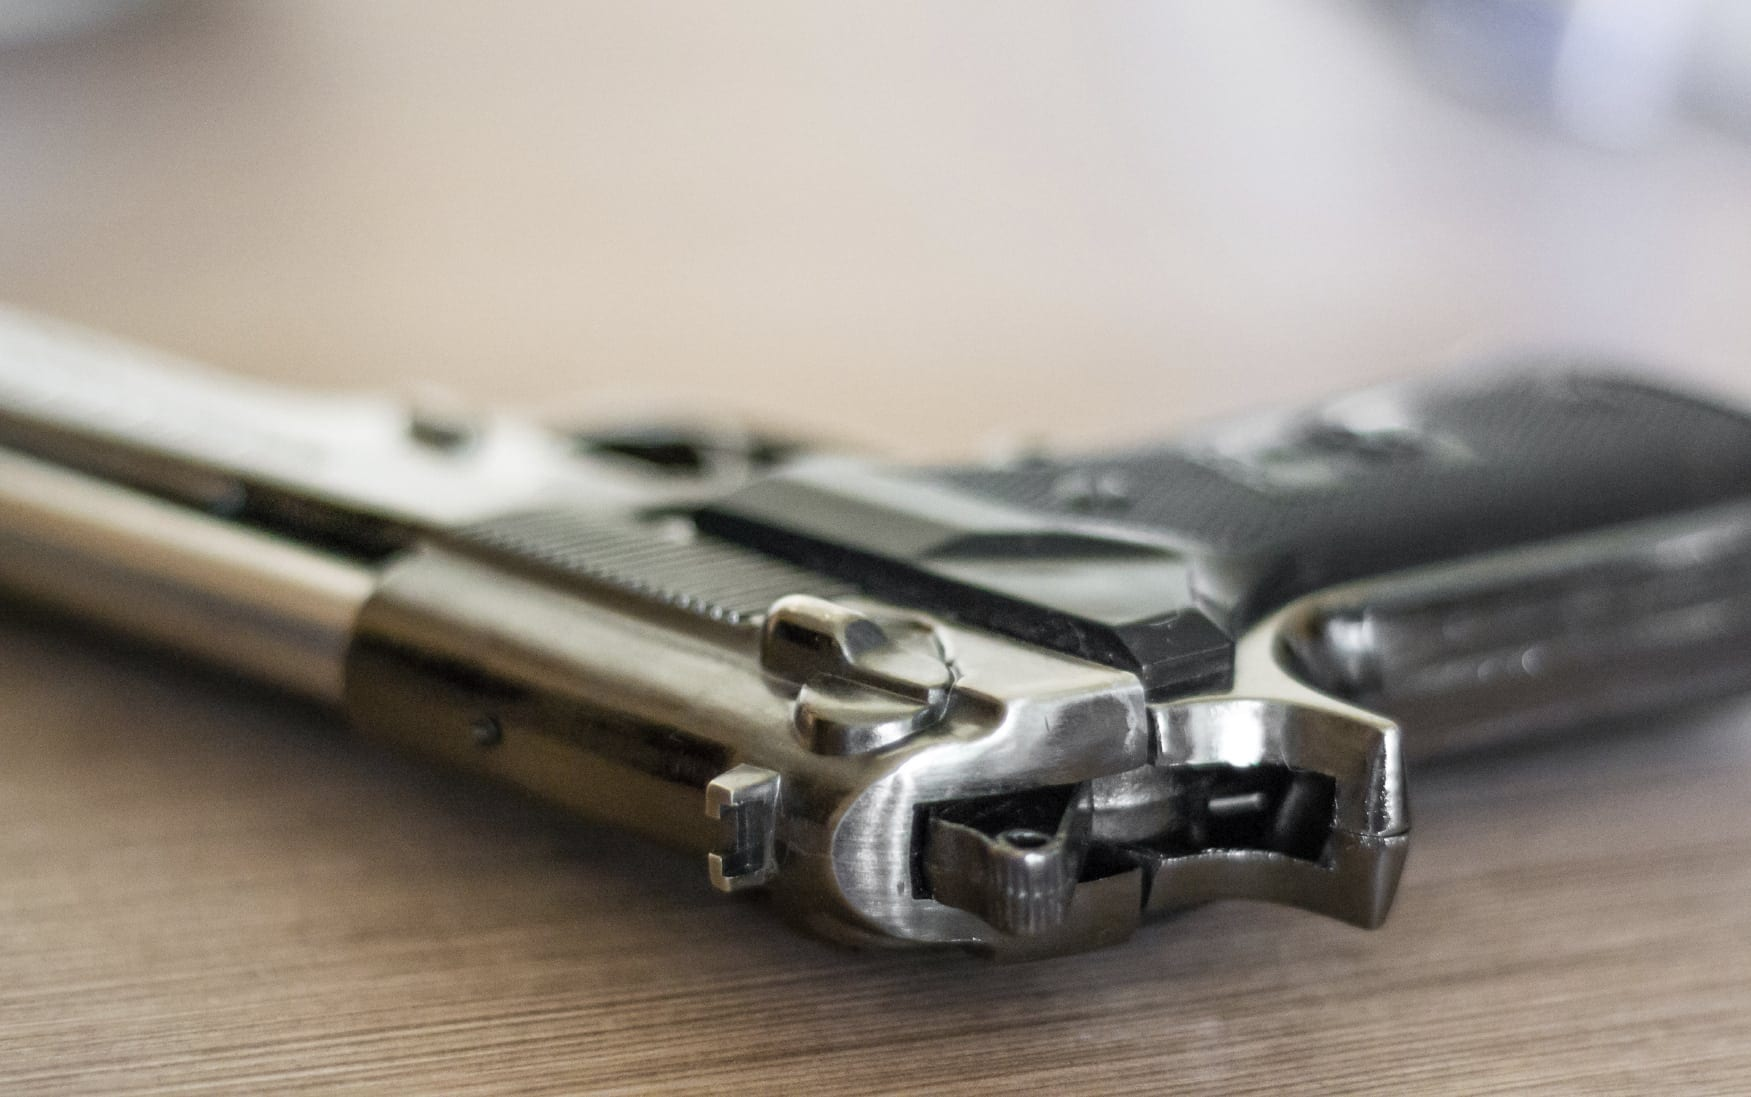 Revolver Laying On A Table Stock Photo